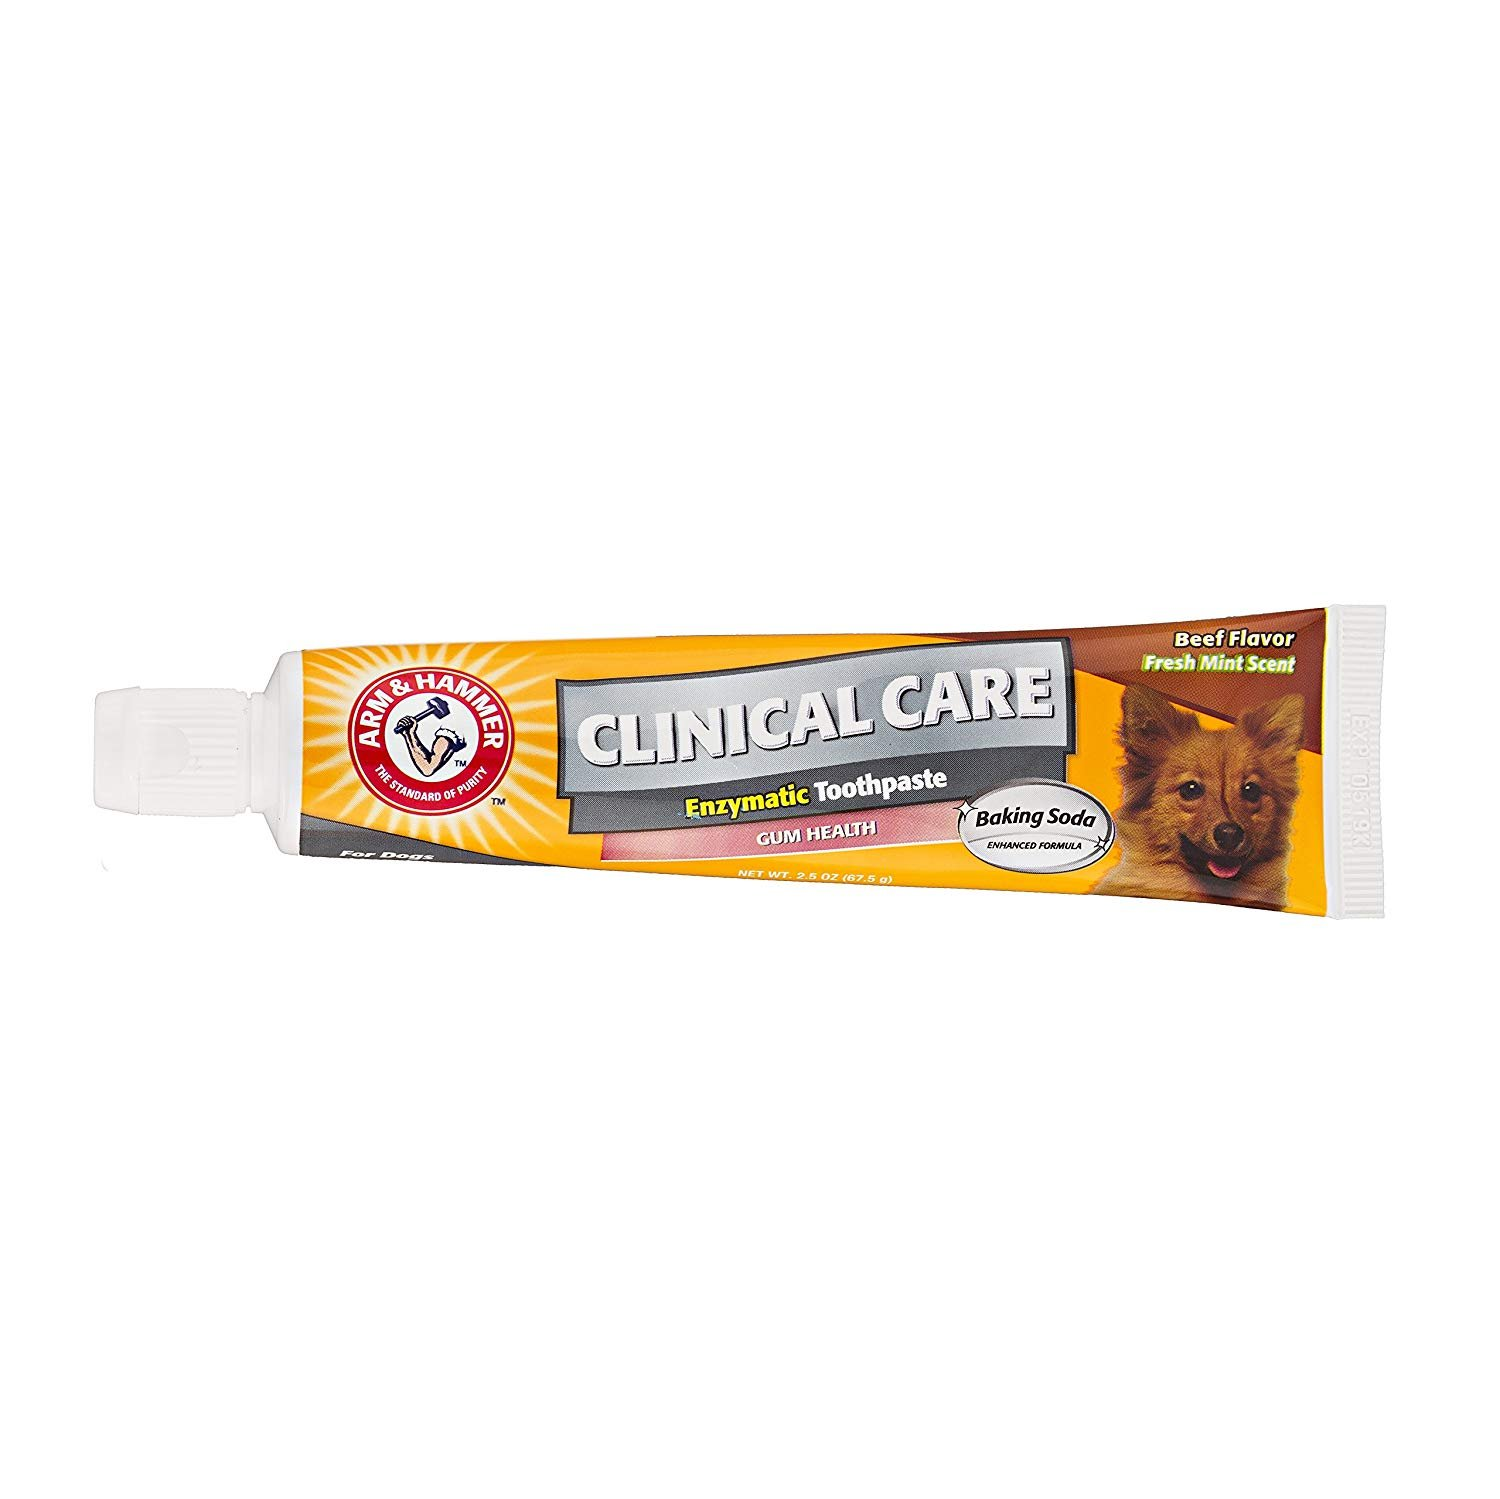 Arm & Hammer Clinical Pet Care Dental Gum Health Enzymatic Toothpaste for Dogs | Soothes Inflamed Gums | Safe for Puppies, 2.5 ounces, Beef Flavor